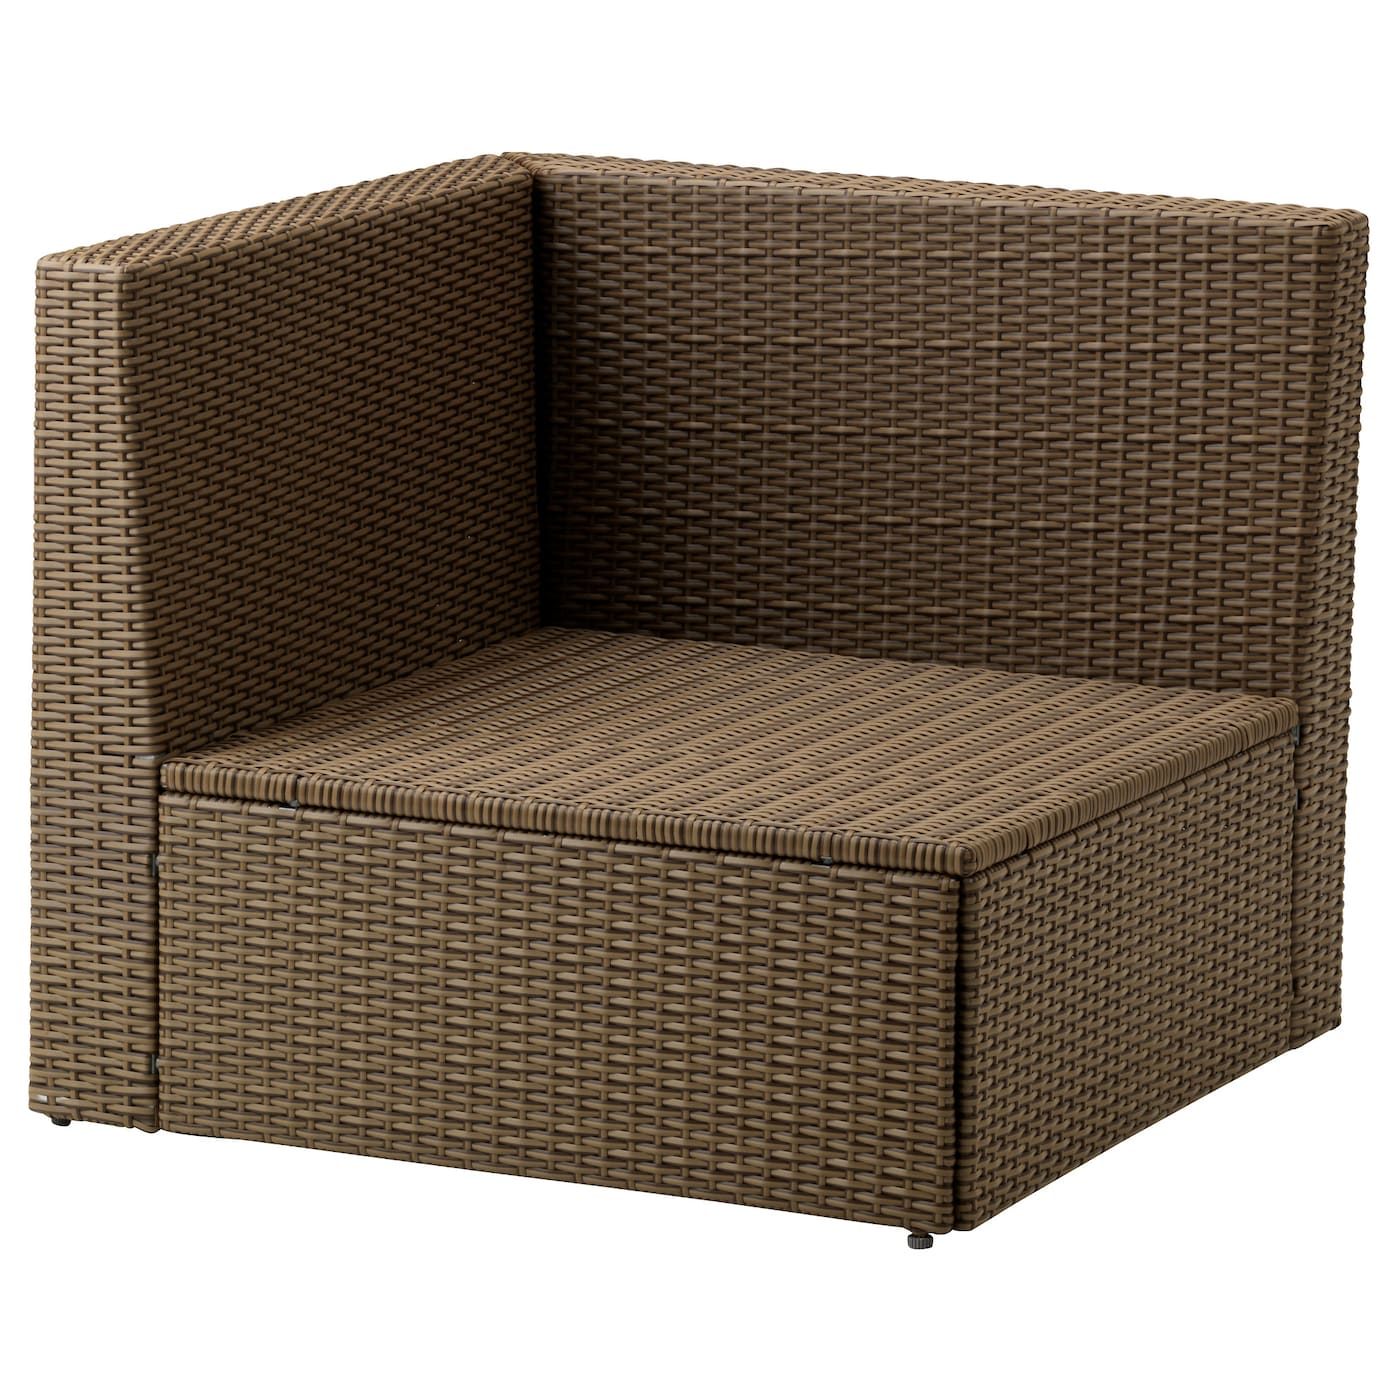 Ikea Klappliege Outdoor And Garden Sofas Wooden And Rattan Furniture Ikea